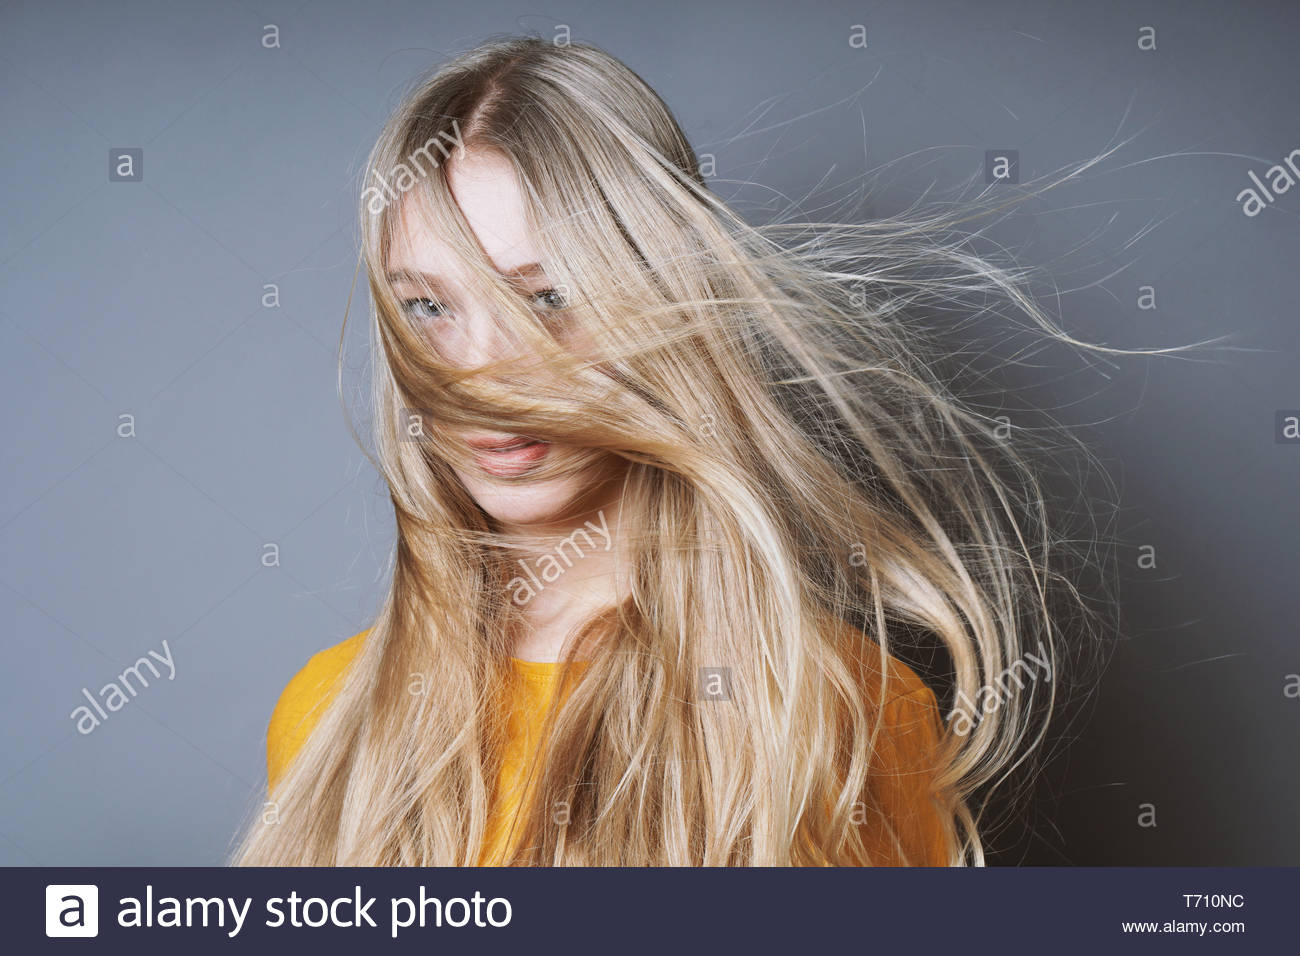 blond woman with long windswept tousled hair - Stock Image